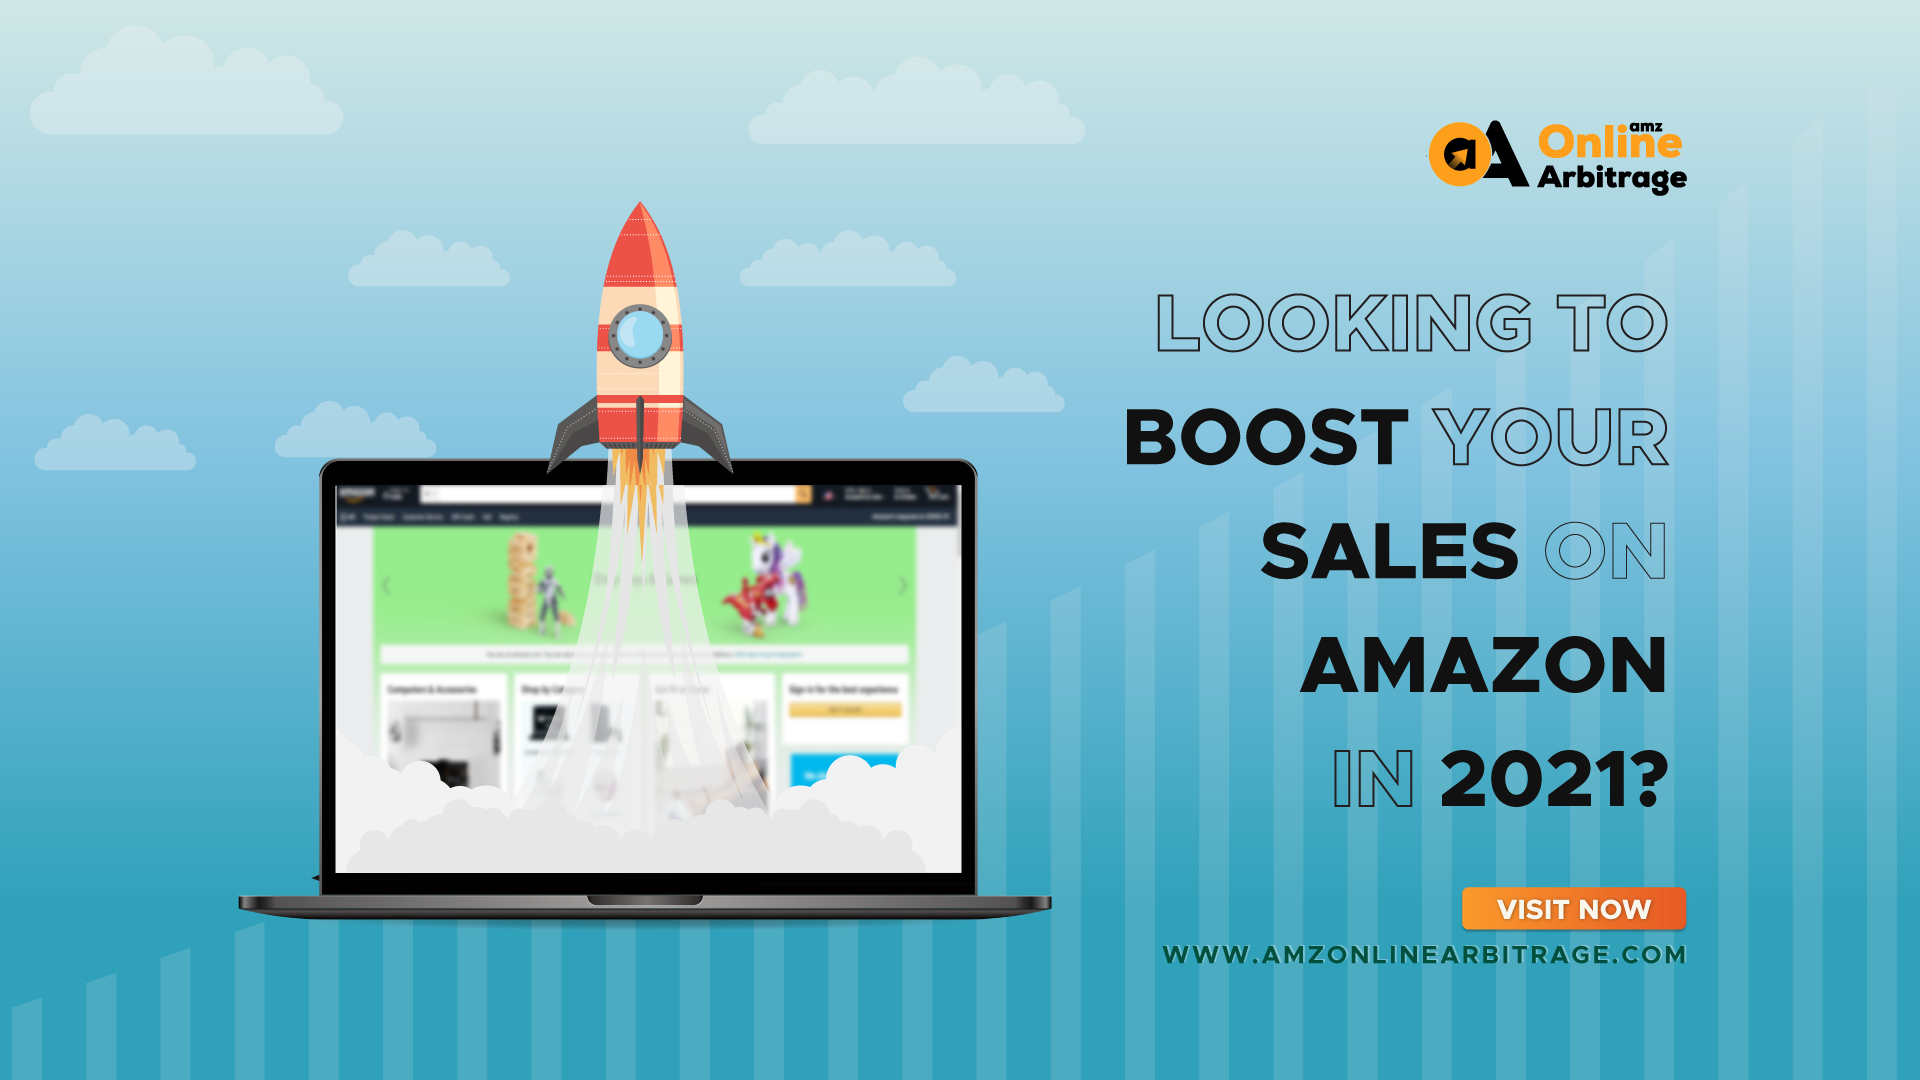 LOOKING TO BOOST YOUR SALES ON AMAZON IN 2021?